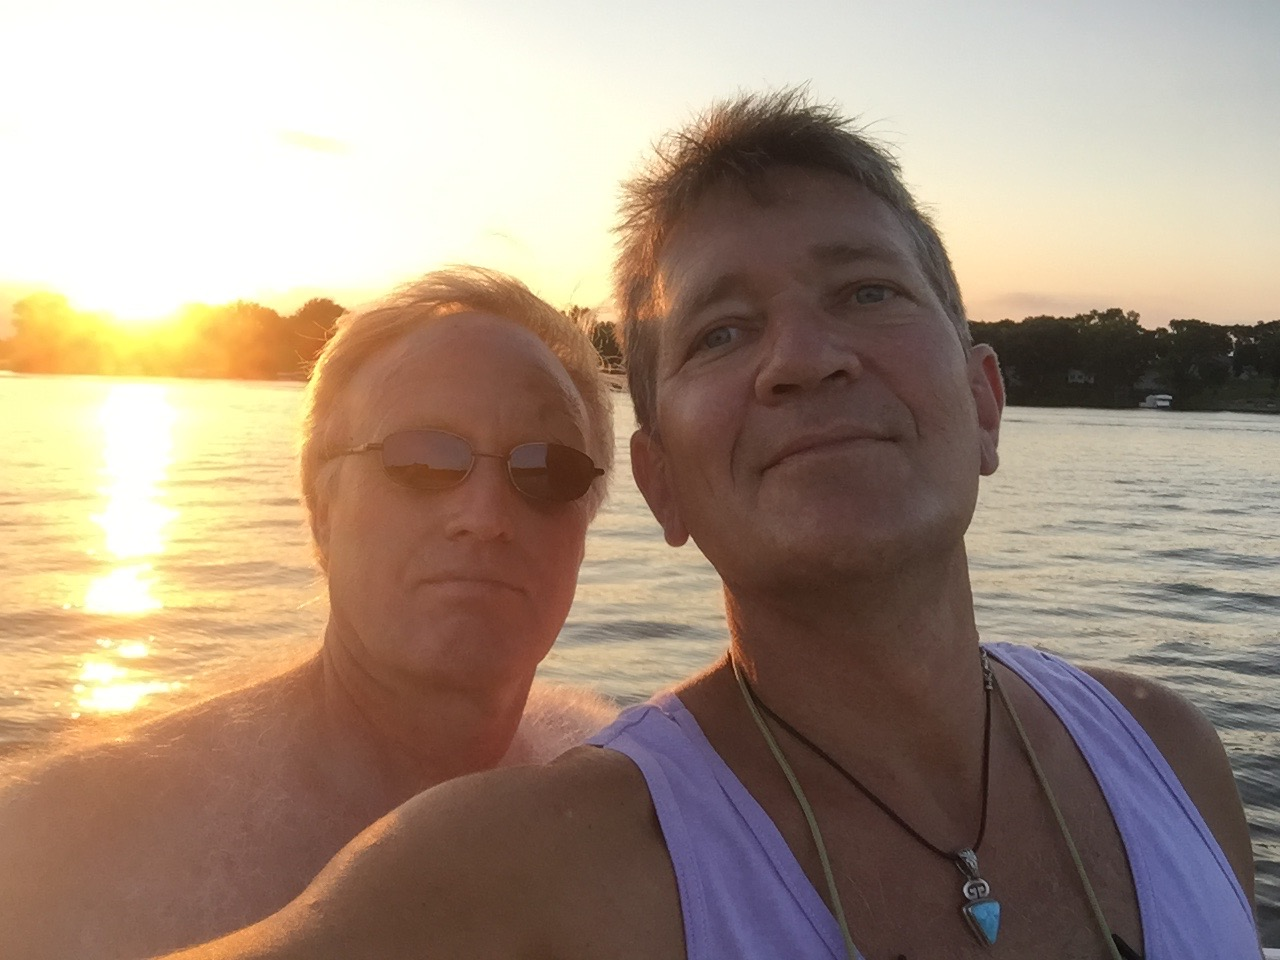 Meet Scott, proudly representing my so many friends. Scott's a BFF since 2nd grade, growing up in Soo Siddy and beyond, who spent the last few days prepping (and partying) with me at home on Lake Owasso. In this pic, we are afloat at Boji just a few weeks ago.